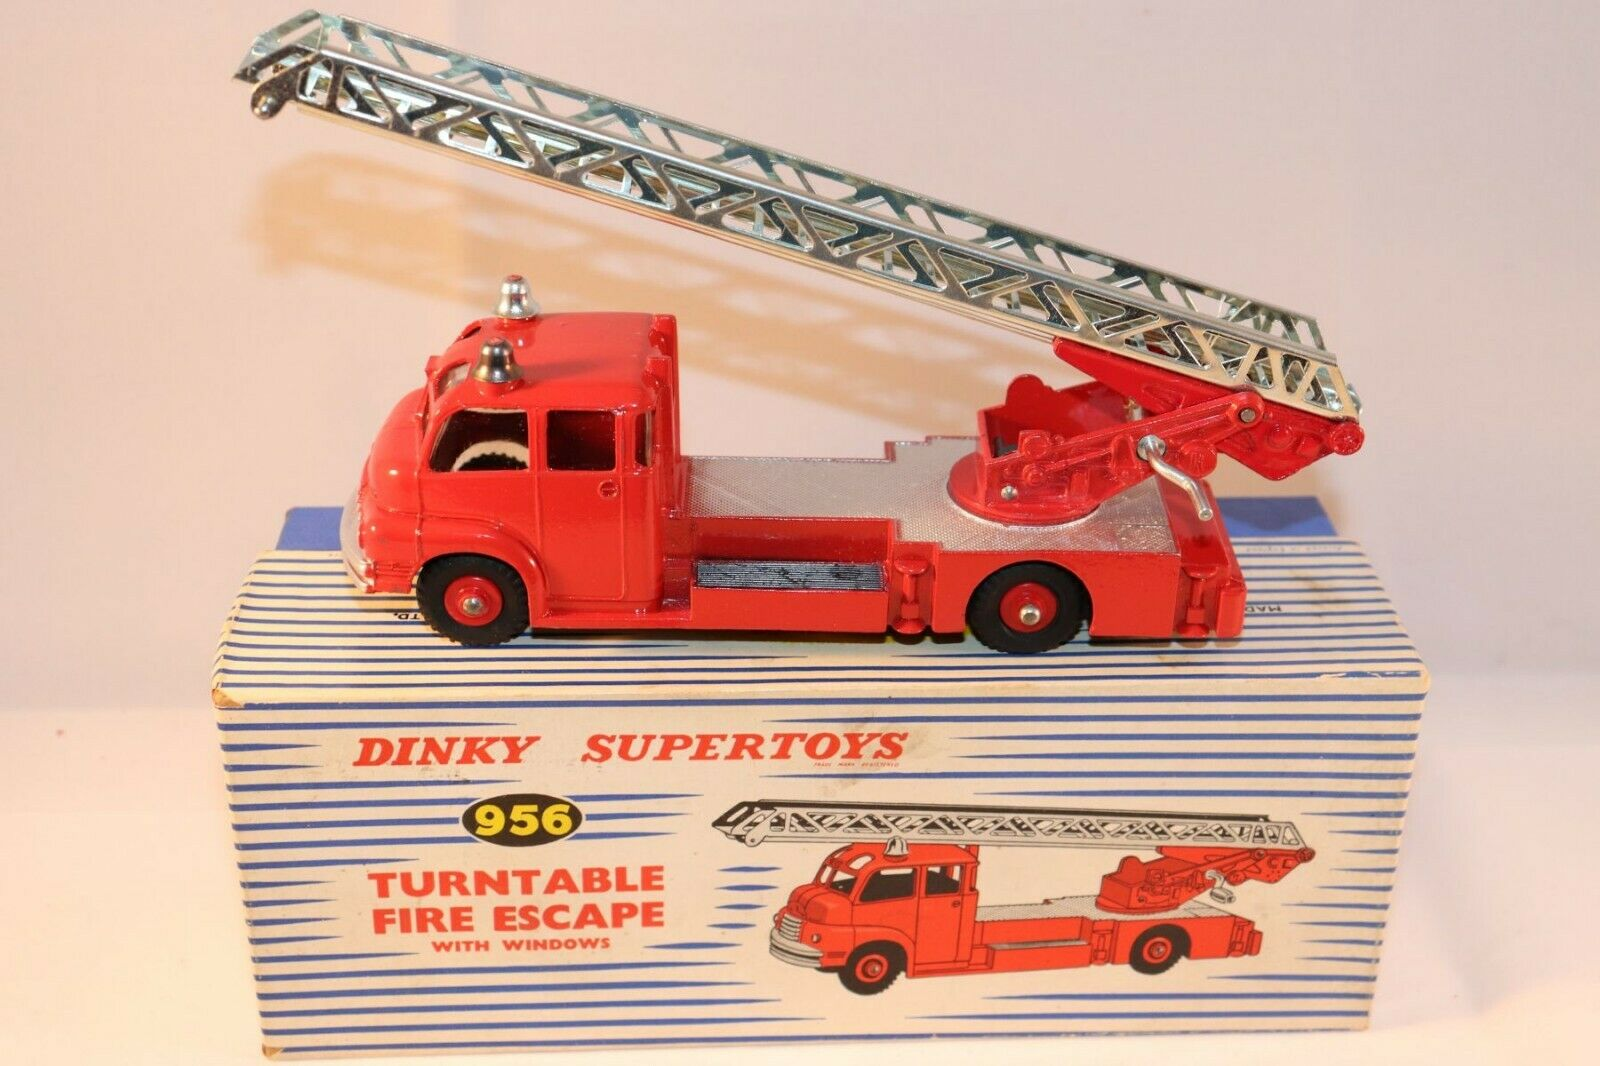 Dinky Toys 956 Turntable Fire Escape very near mint with plastic wheels rare